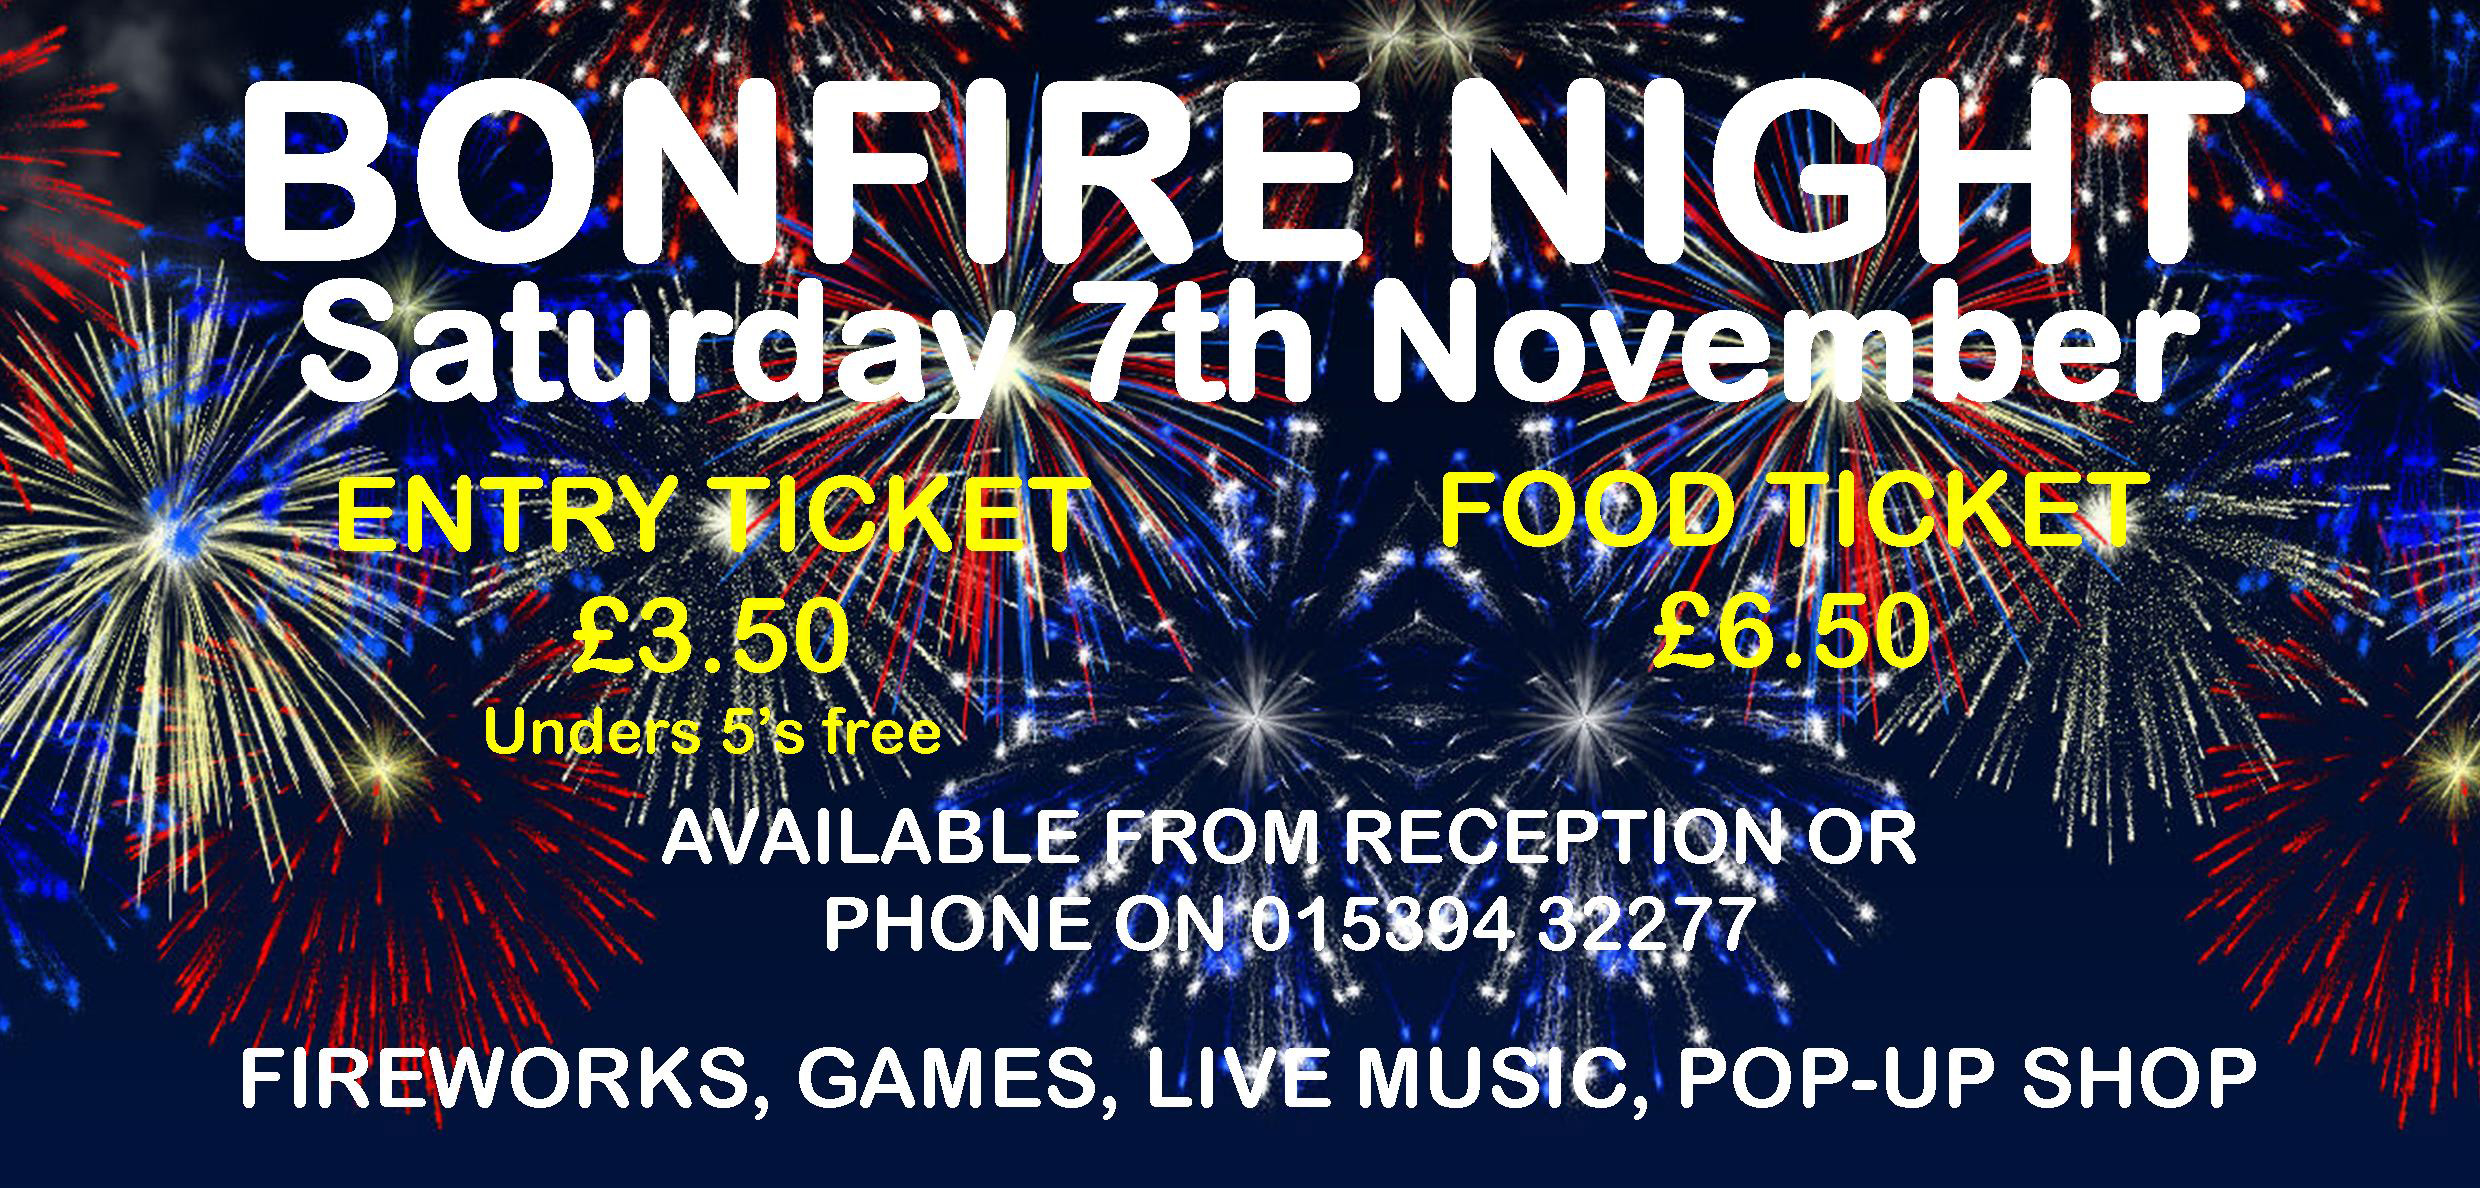 Bonfire and Fireworks at Skelwith Fold Caravan Park in the Lake District